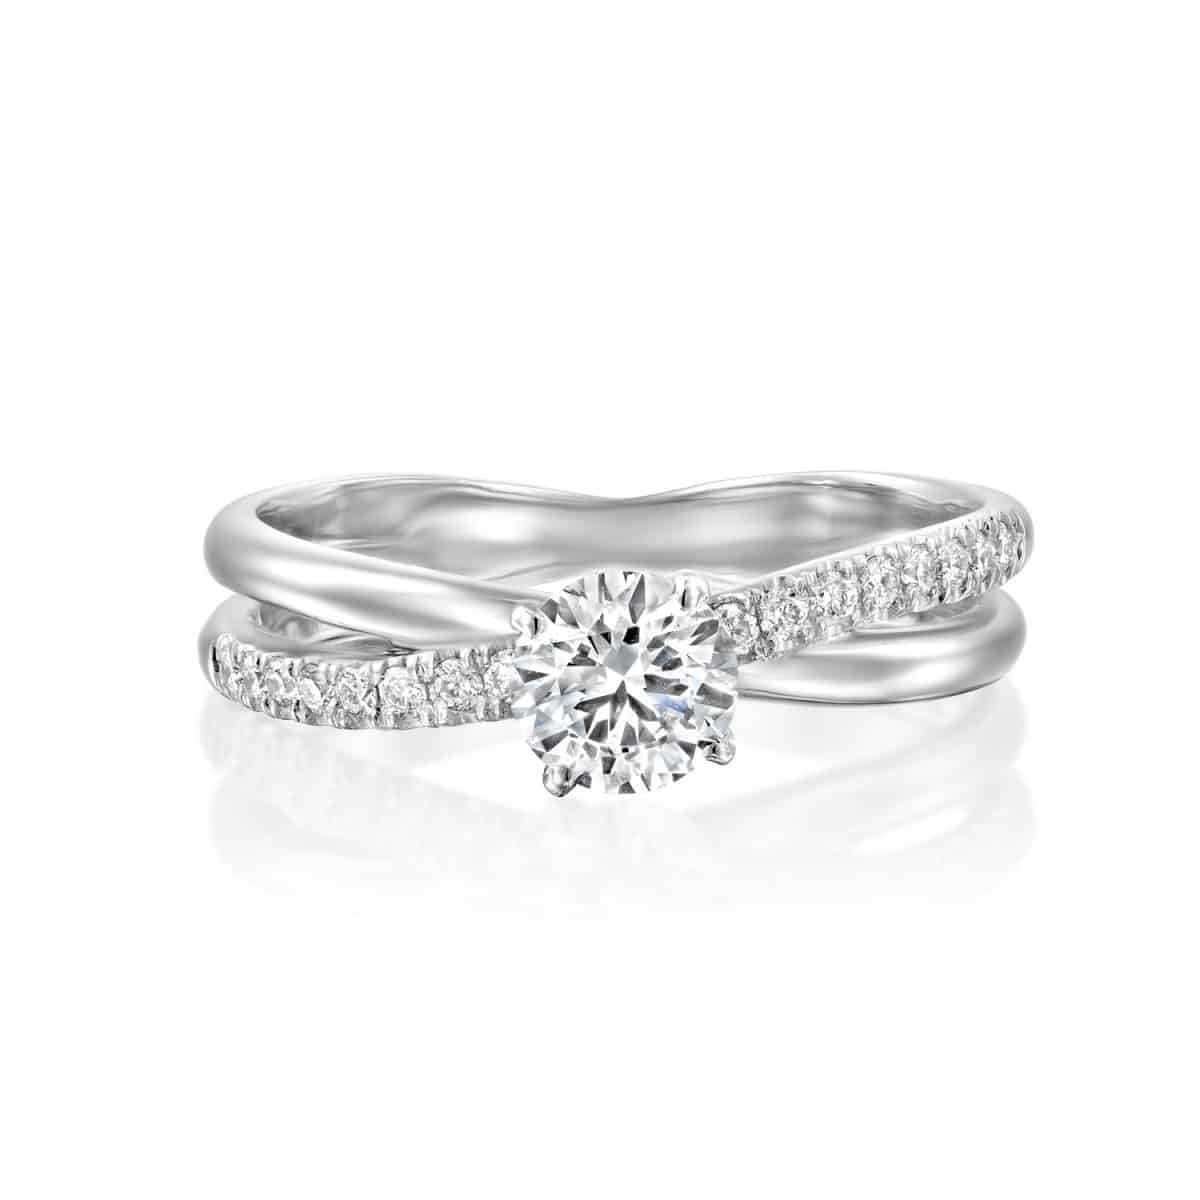 Monique - Twist White Gold Lab Grown Diamond Engagement Ring 0.61ct. - laying